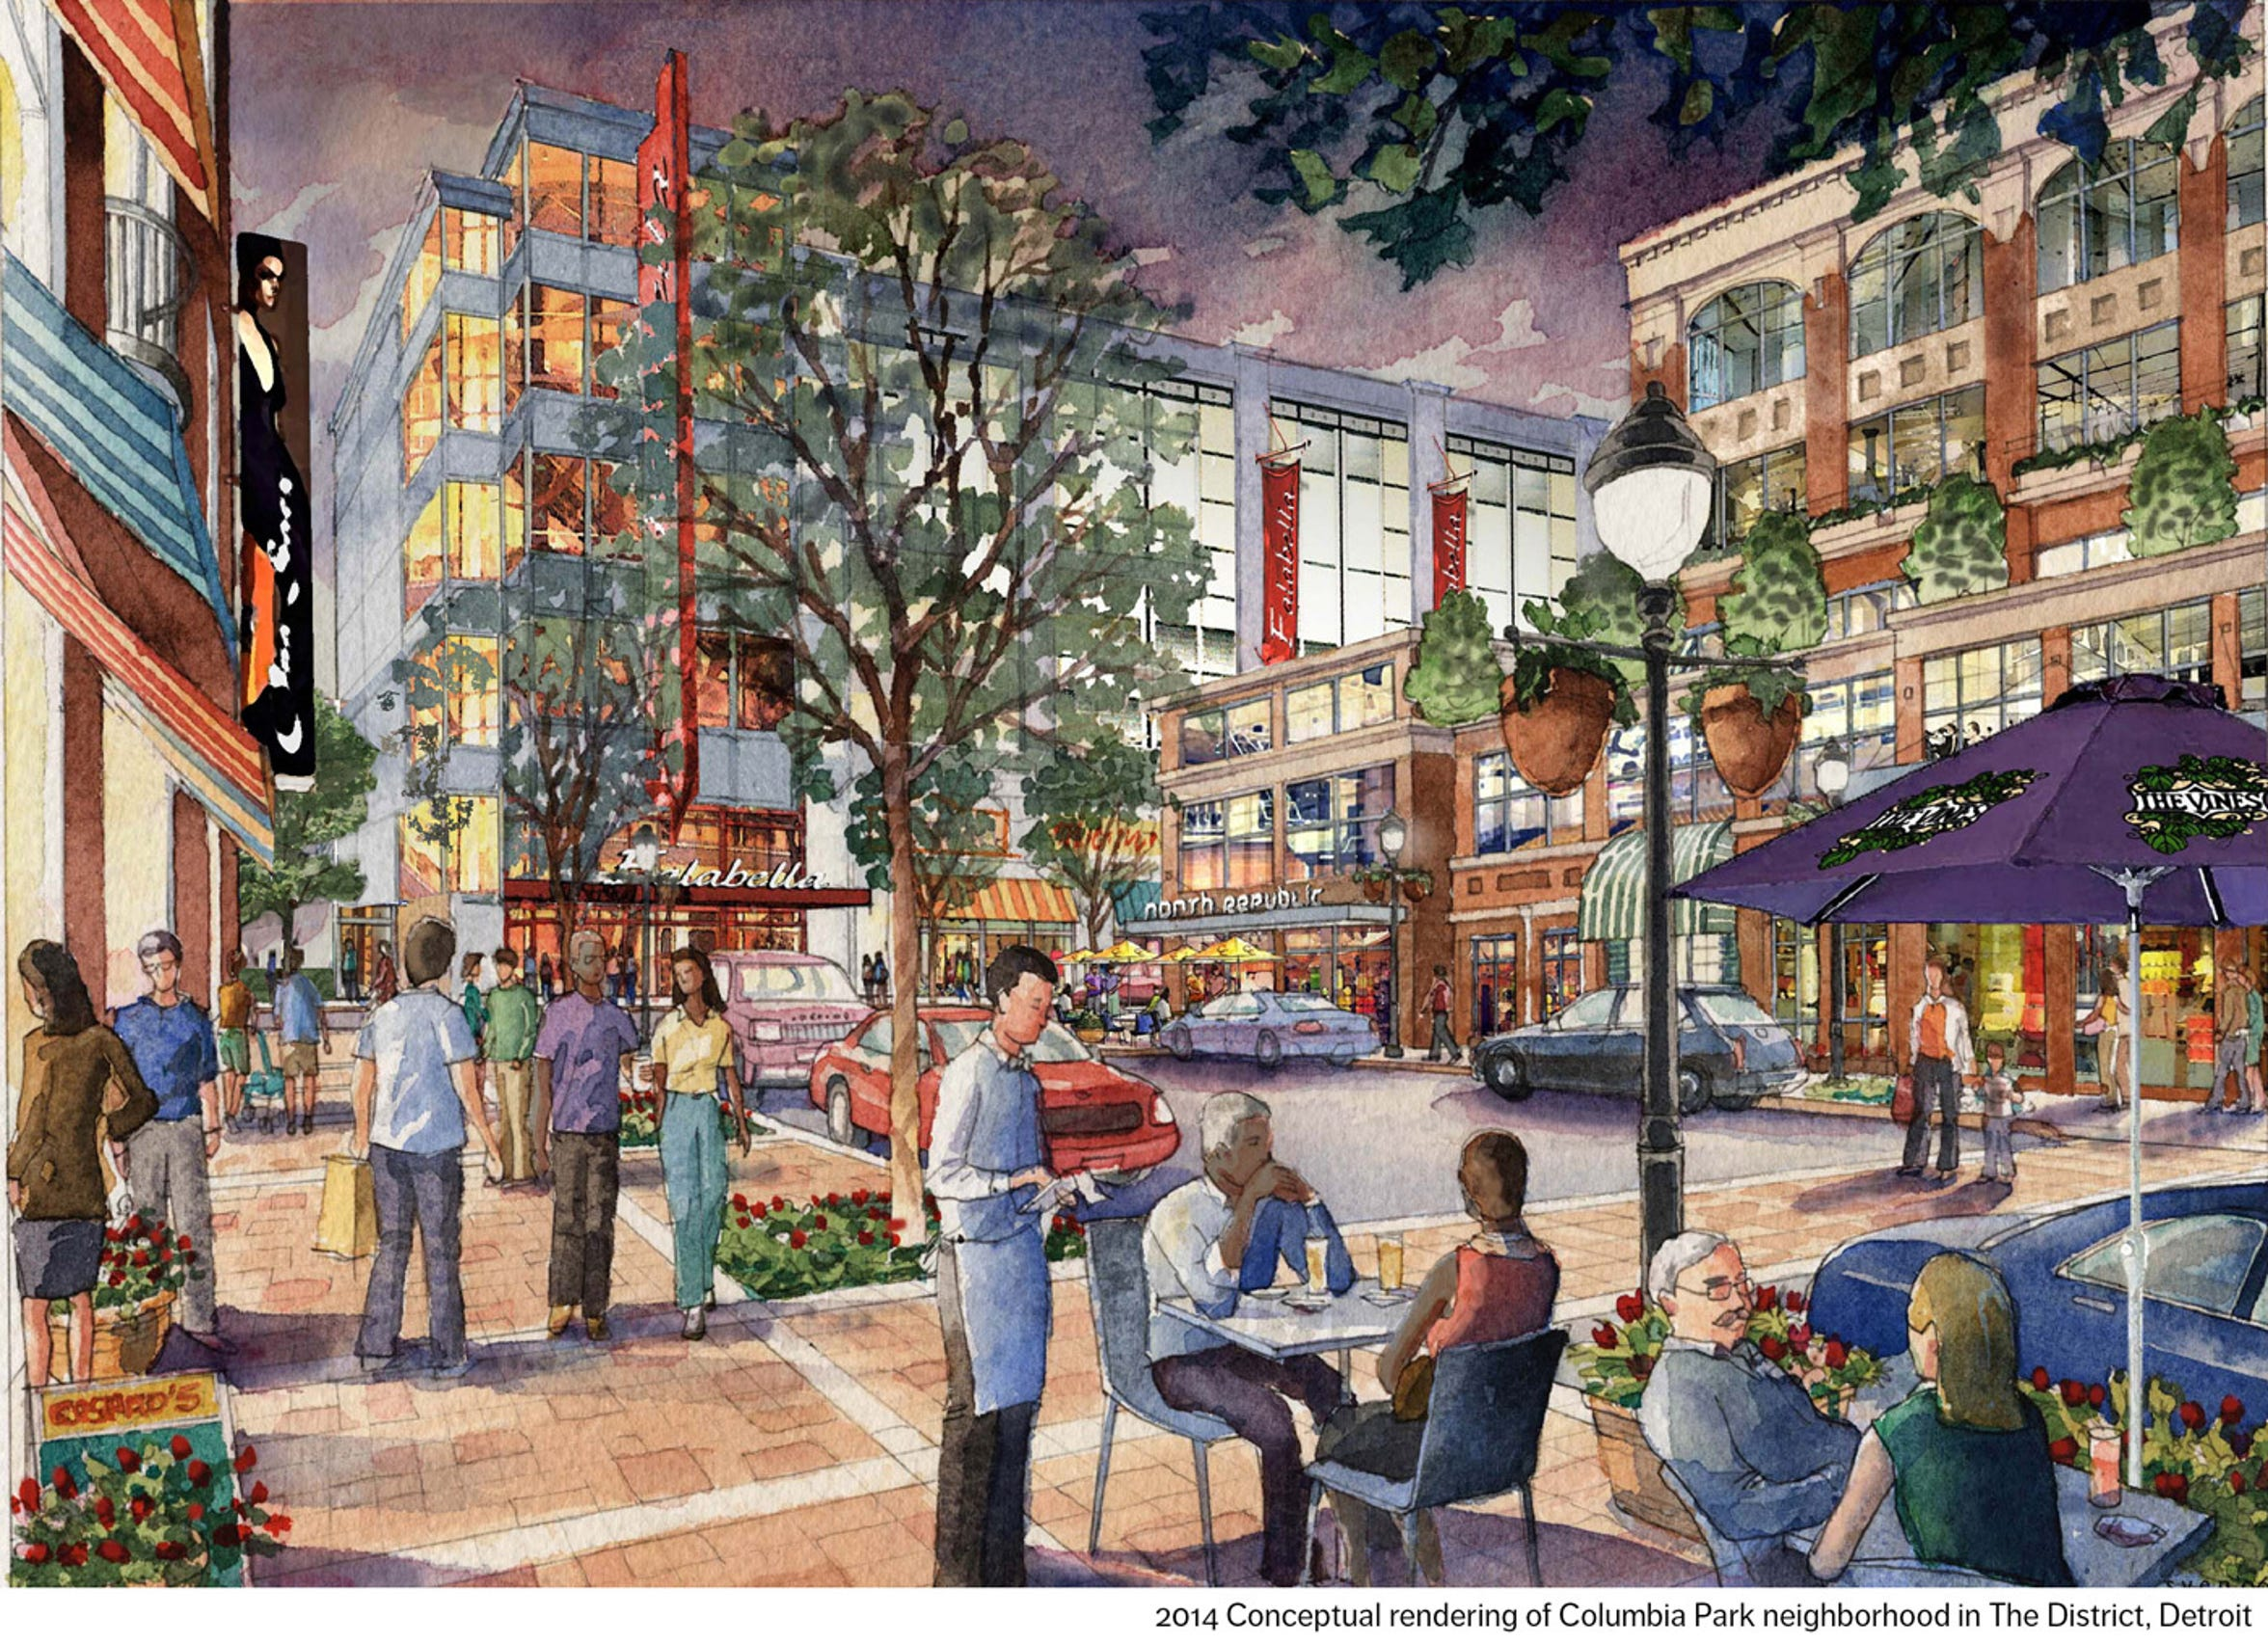 2014 Conceptual rendering of Columbia Park neighborhood in The District, Detroit, surrounding Little Caesars Arena.